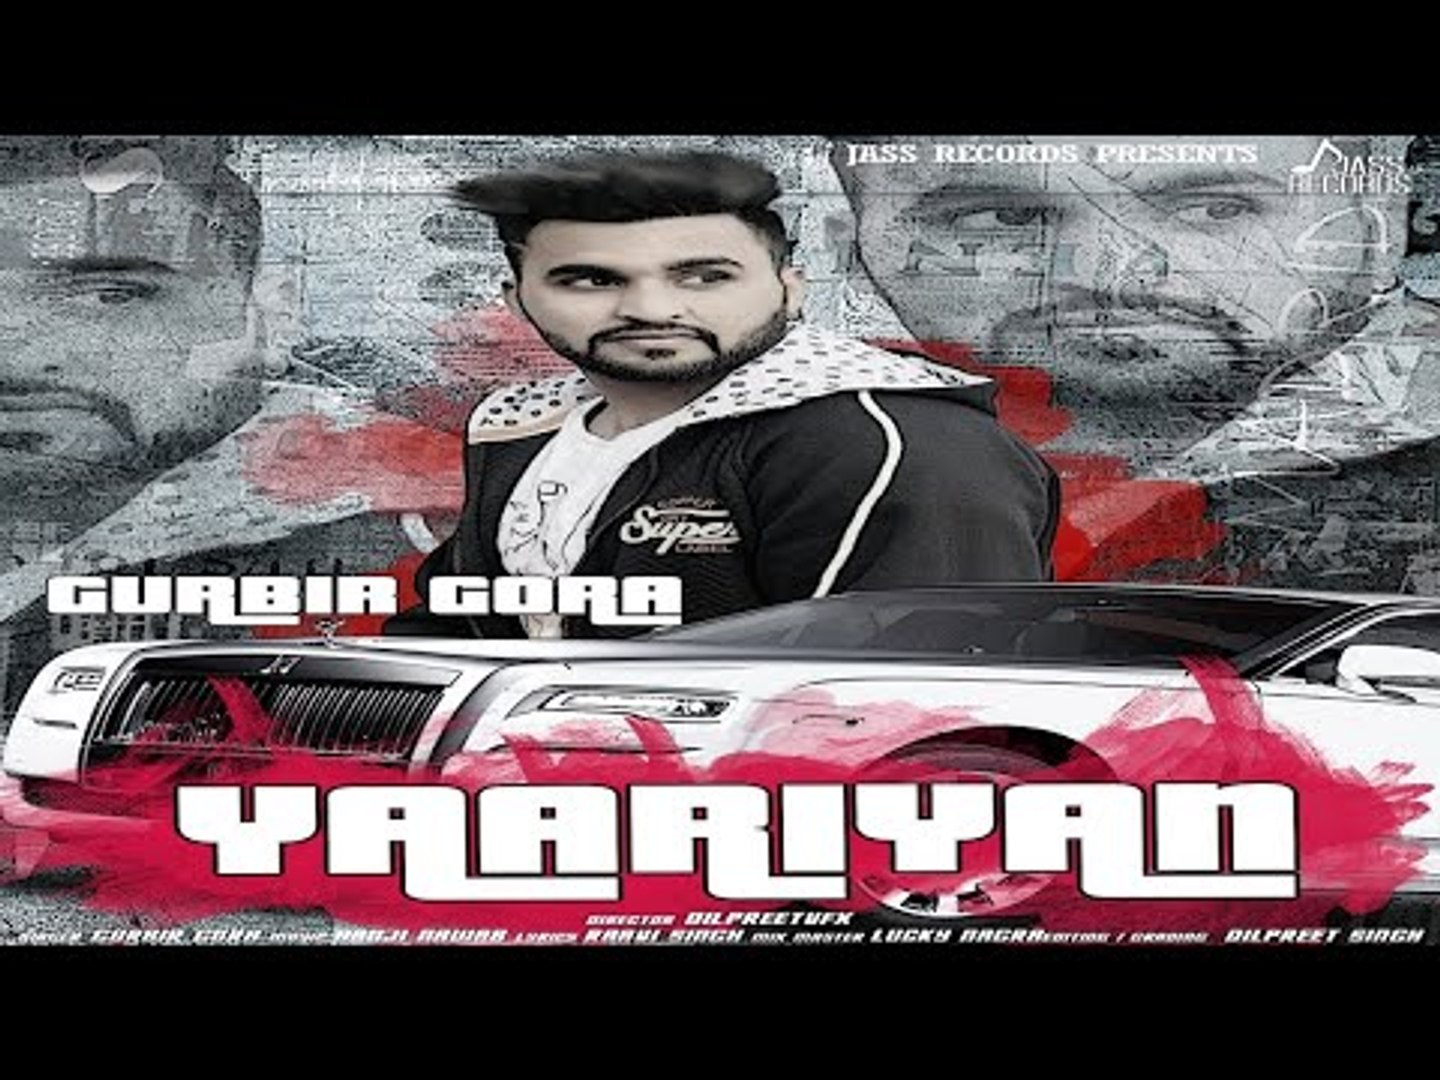 Yaariyan | (Full HD) | Gurbir Gora | New Punjabi Songs 2018 | Latest Punjabi Songs 2018